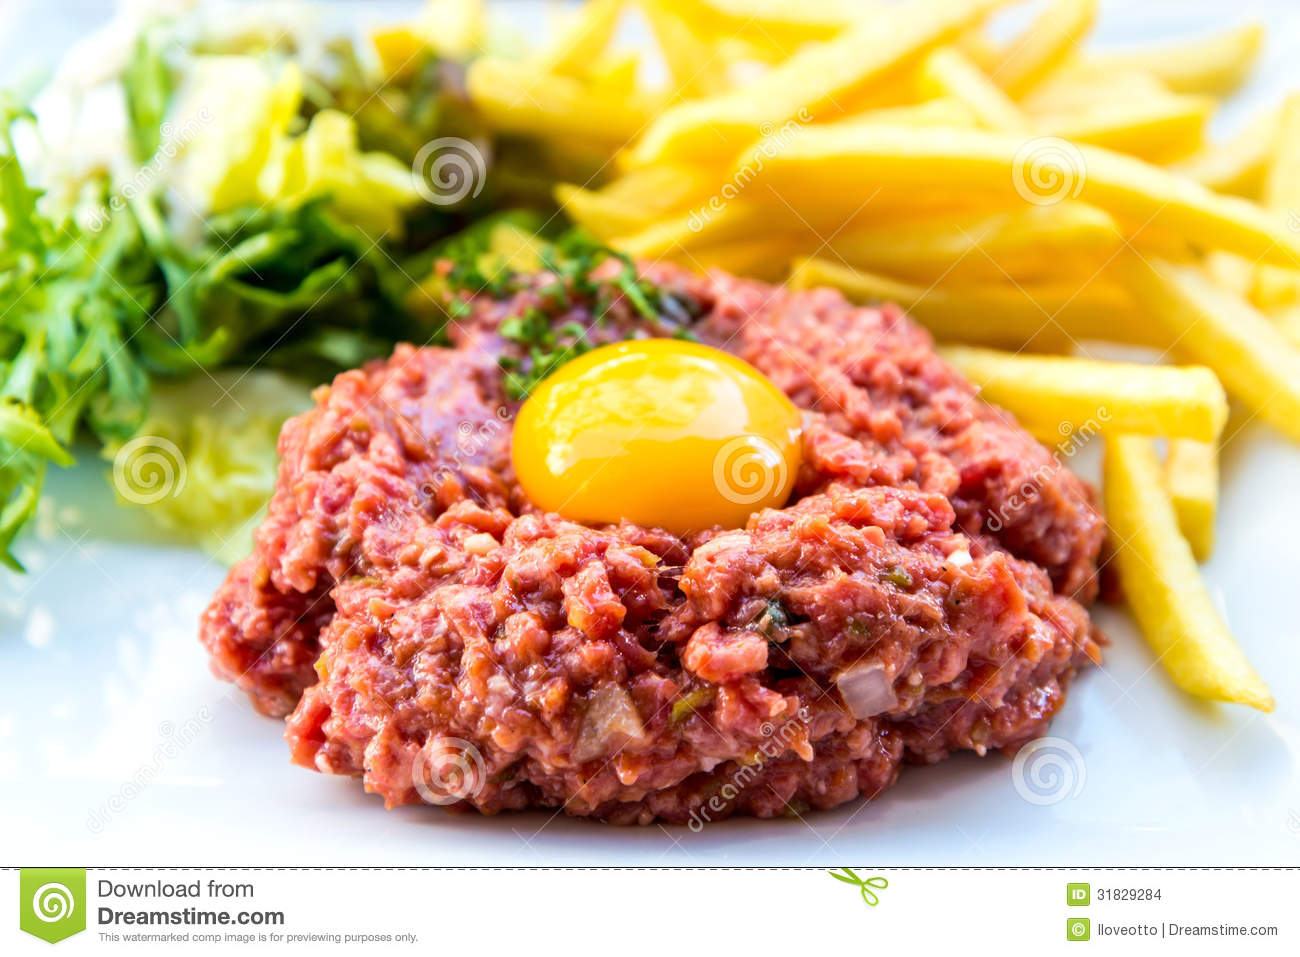 Tasty Steak tartare (Raw beef) - classic steak tartare on white plate.